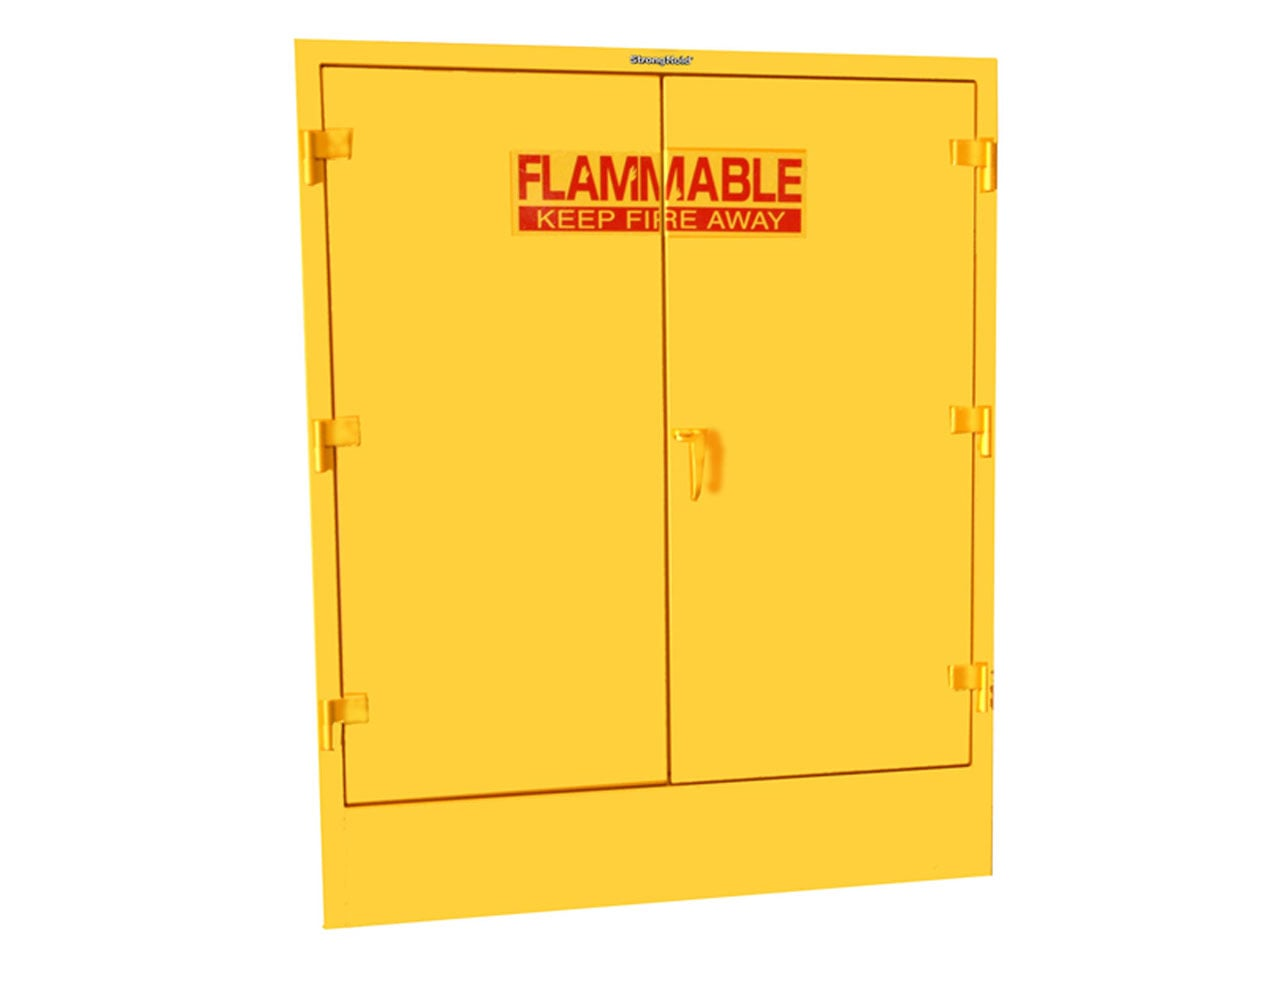 Extra Heavy Duty 12 GA 110 Gallon Double Drum Flammable Safety Cabinet with Manual-Closing Doors, 2 Shelves – 58 In. W x 30 In. D x 72 In. H